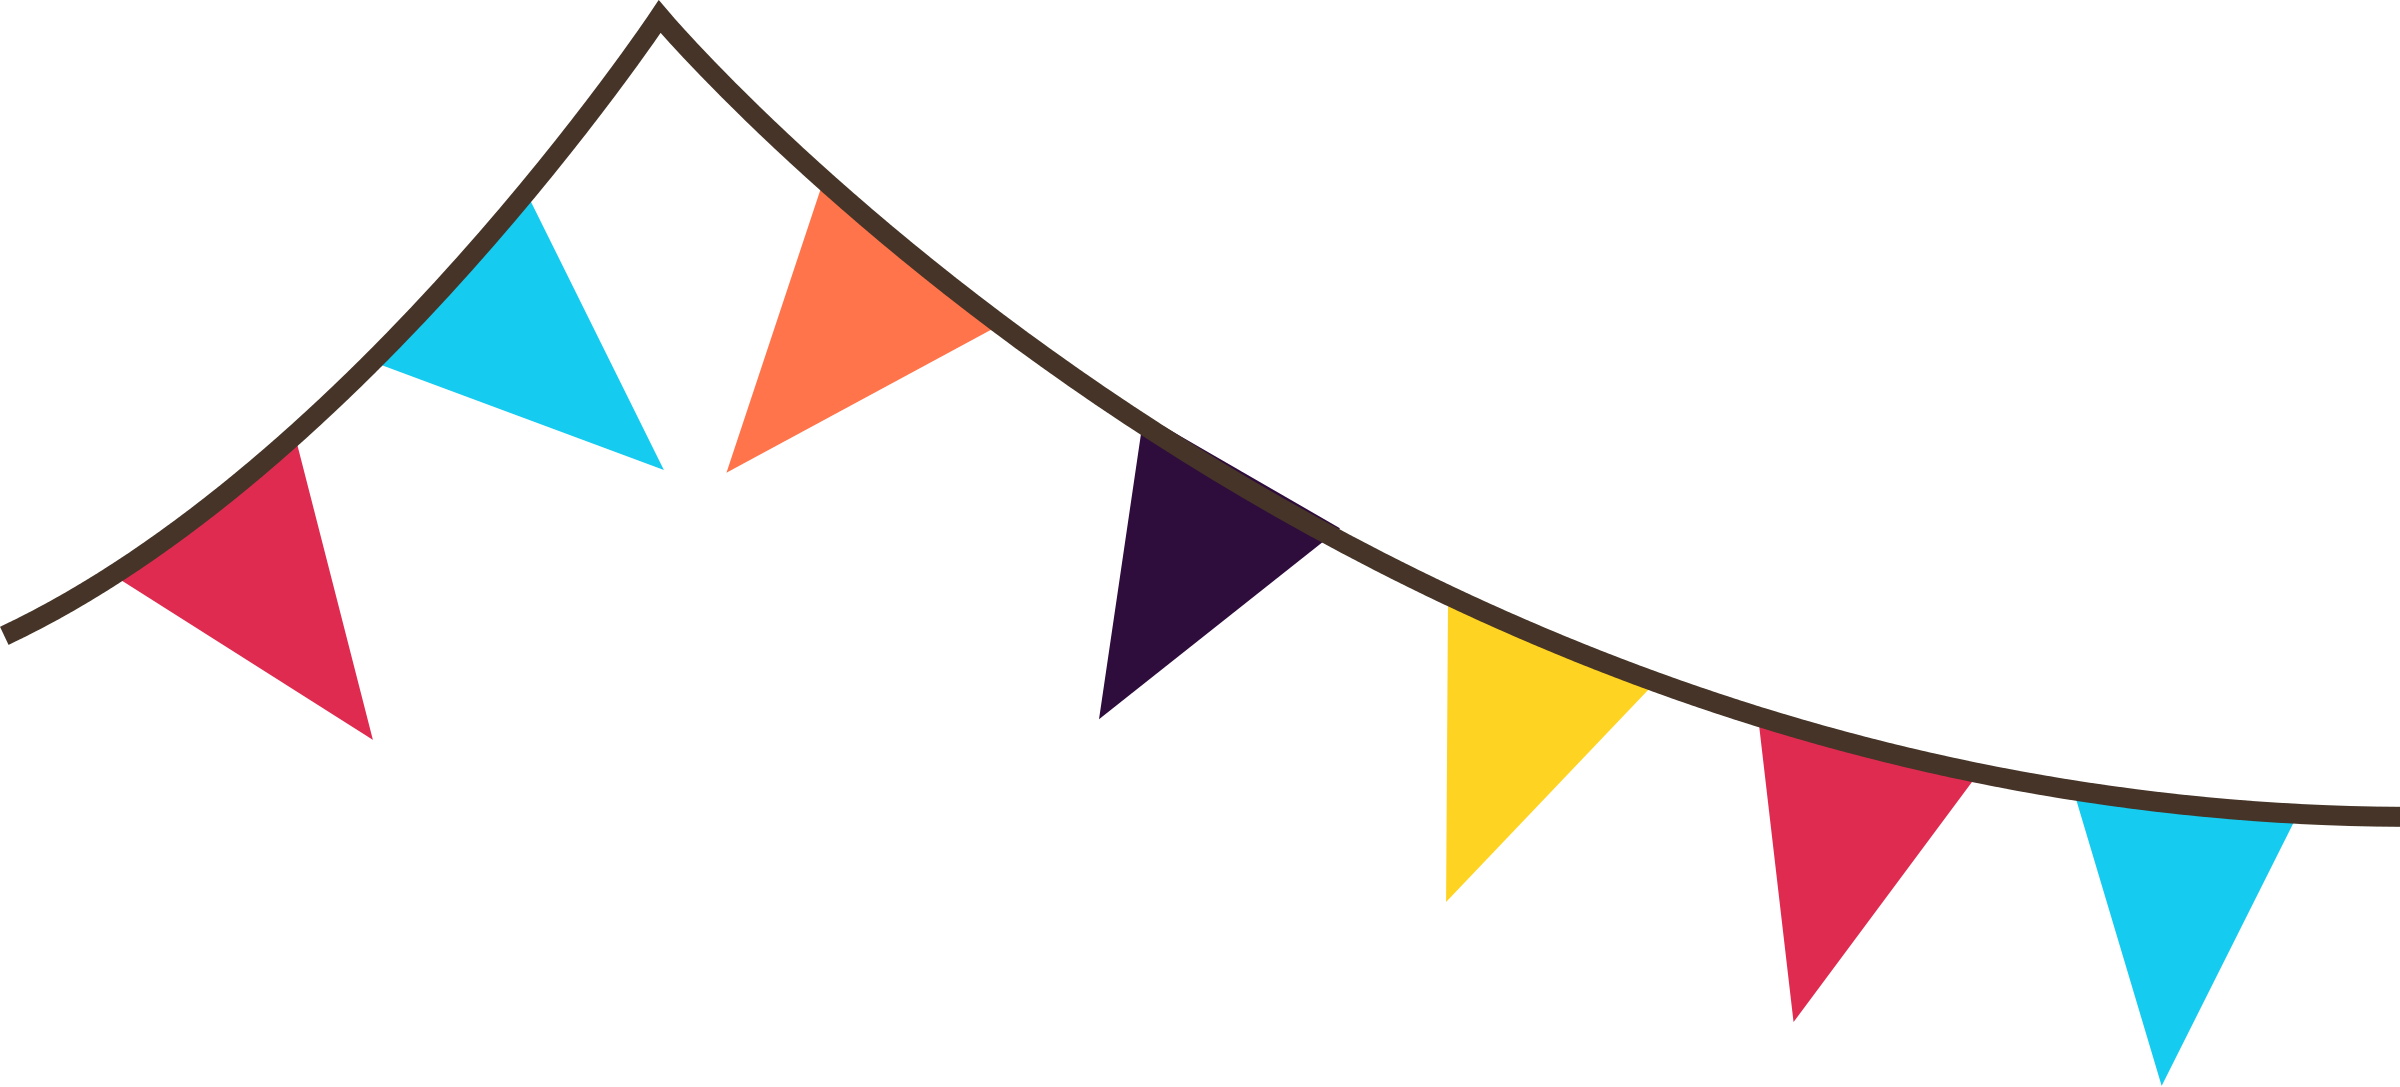 2400x1087 Png Triangle Flag Transparent Triangle Flag.png Images. Pluspng